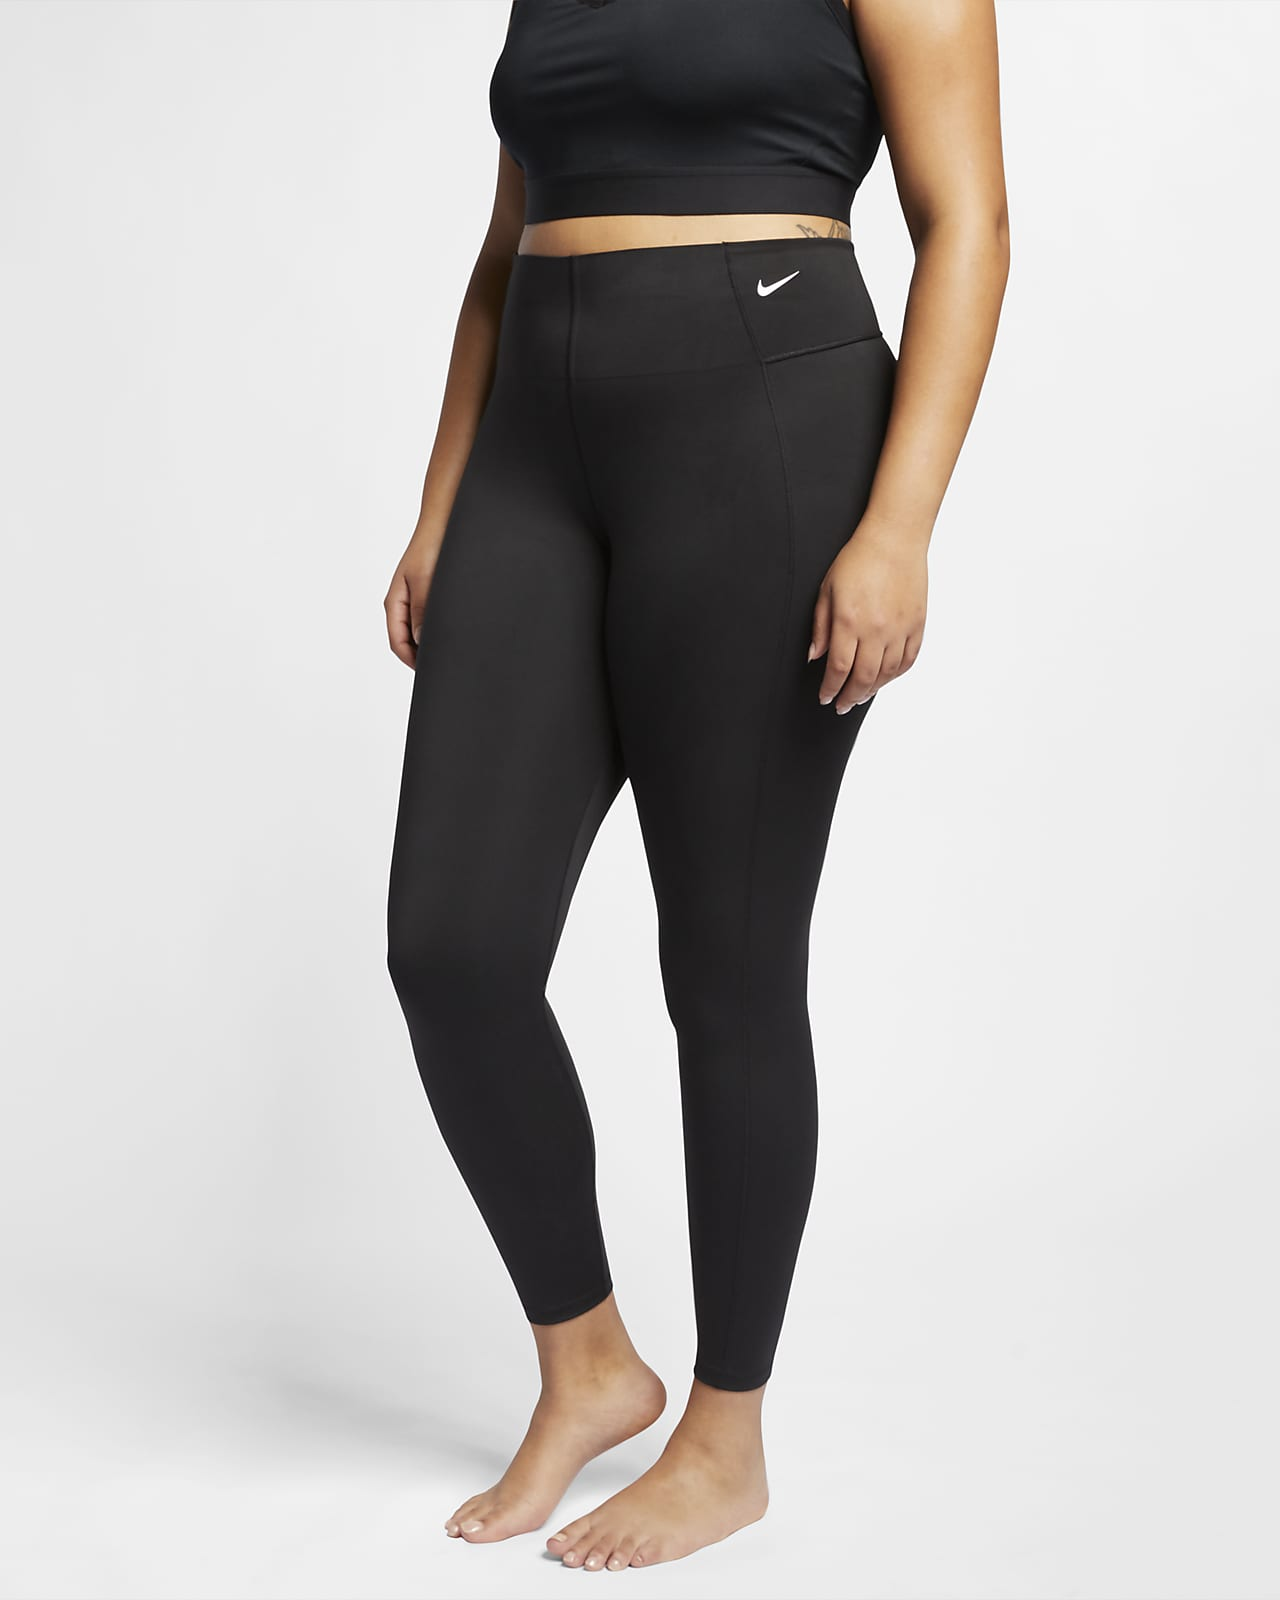 Nike Sculpt Victory Women's High-Waisted Training Leggings (Plus Size)